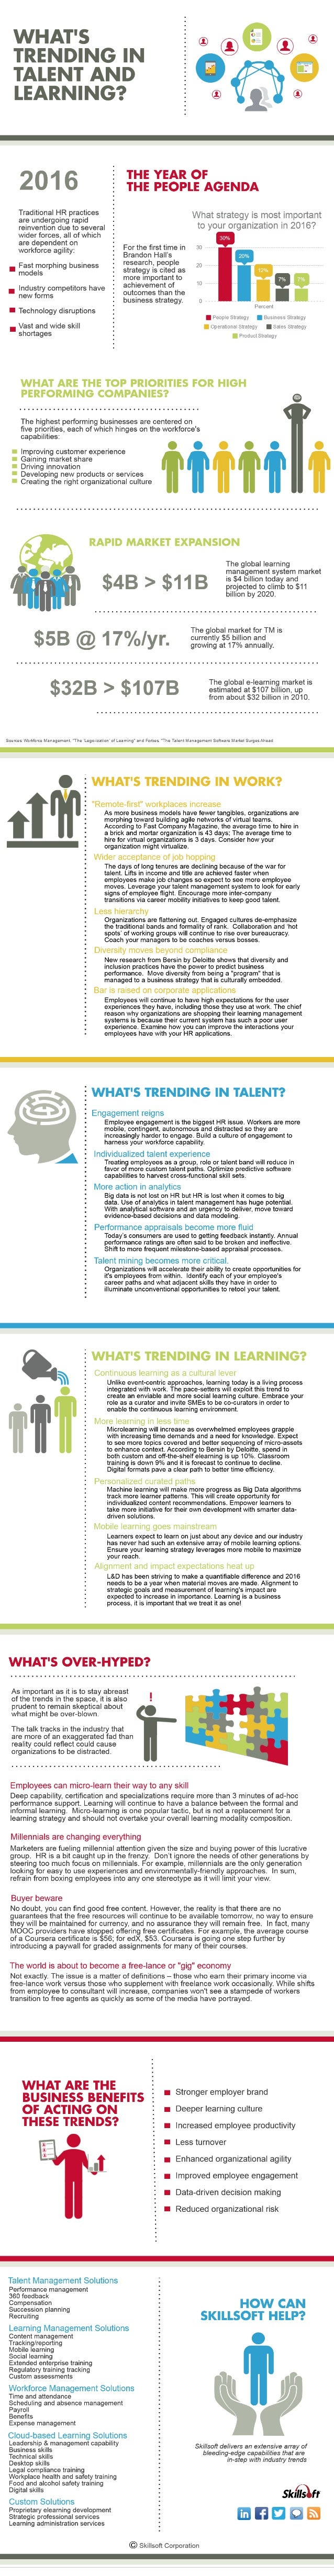 What's Trending in Talent and Learning for 2016?